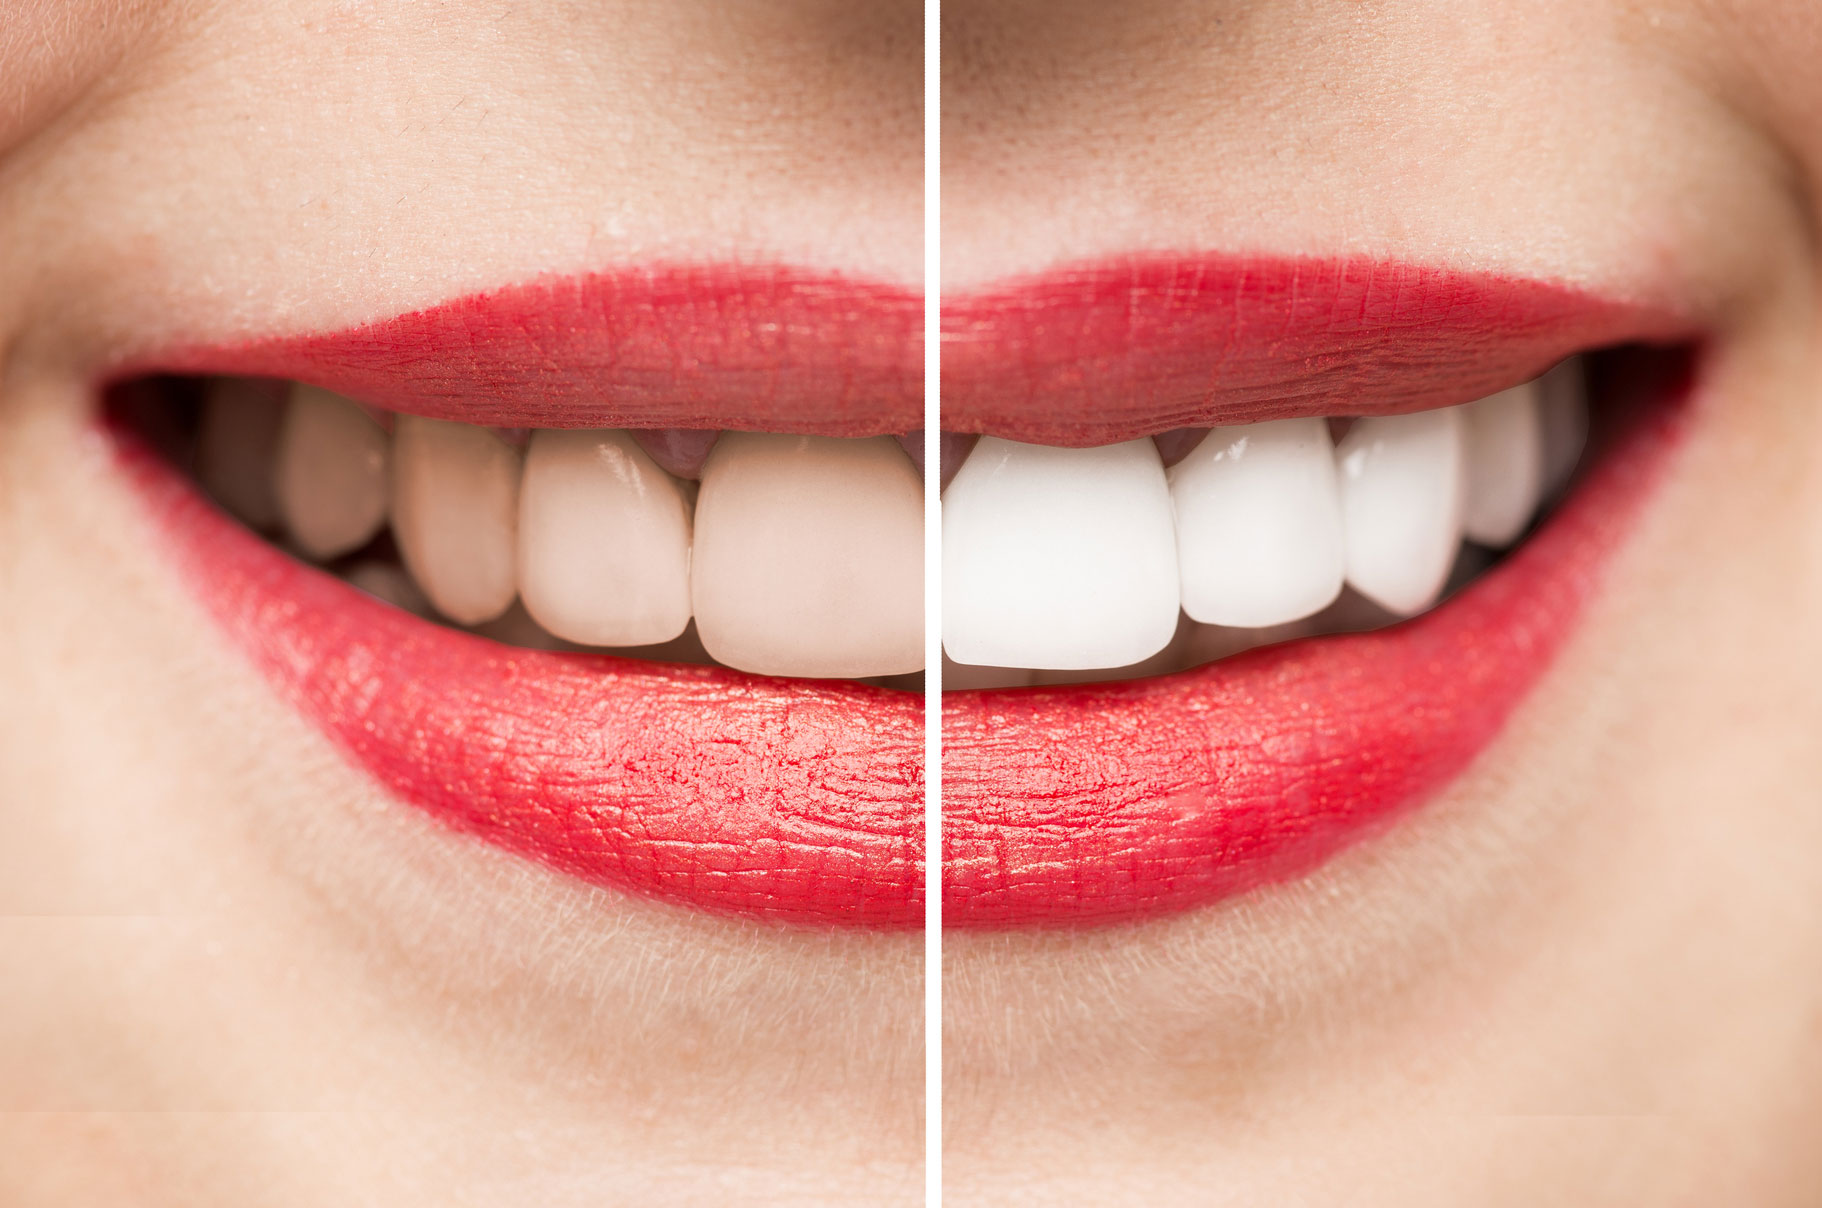 Showing teeth before and after whitening